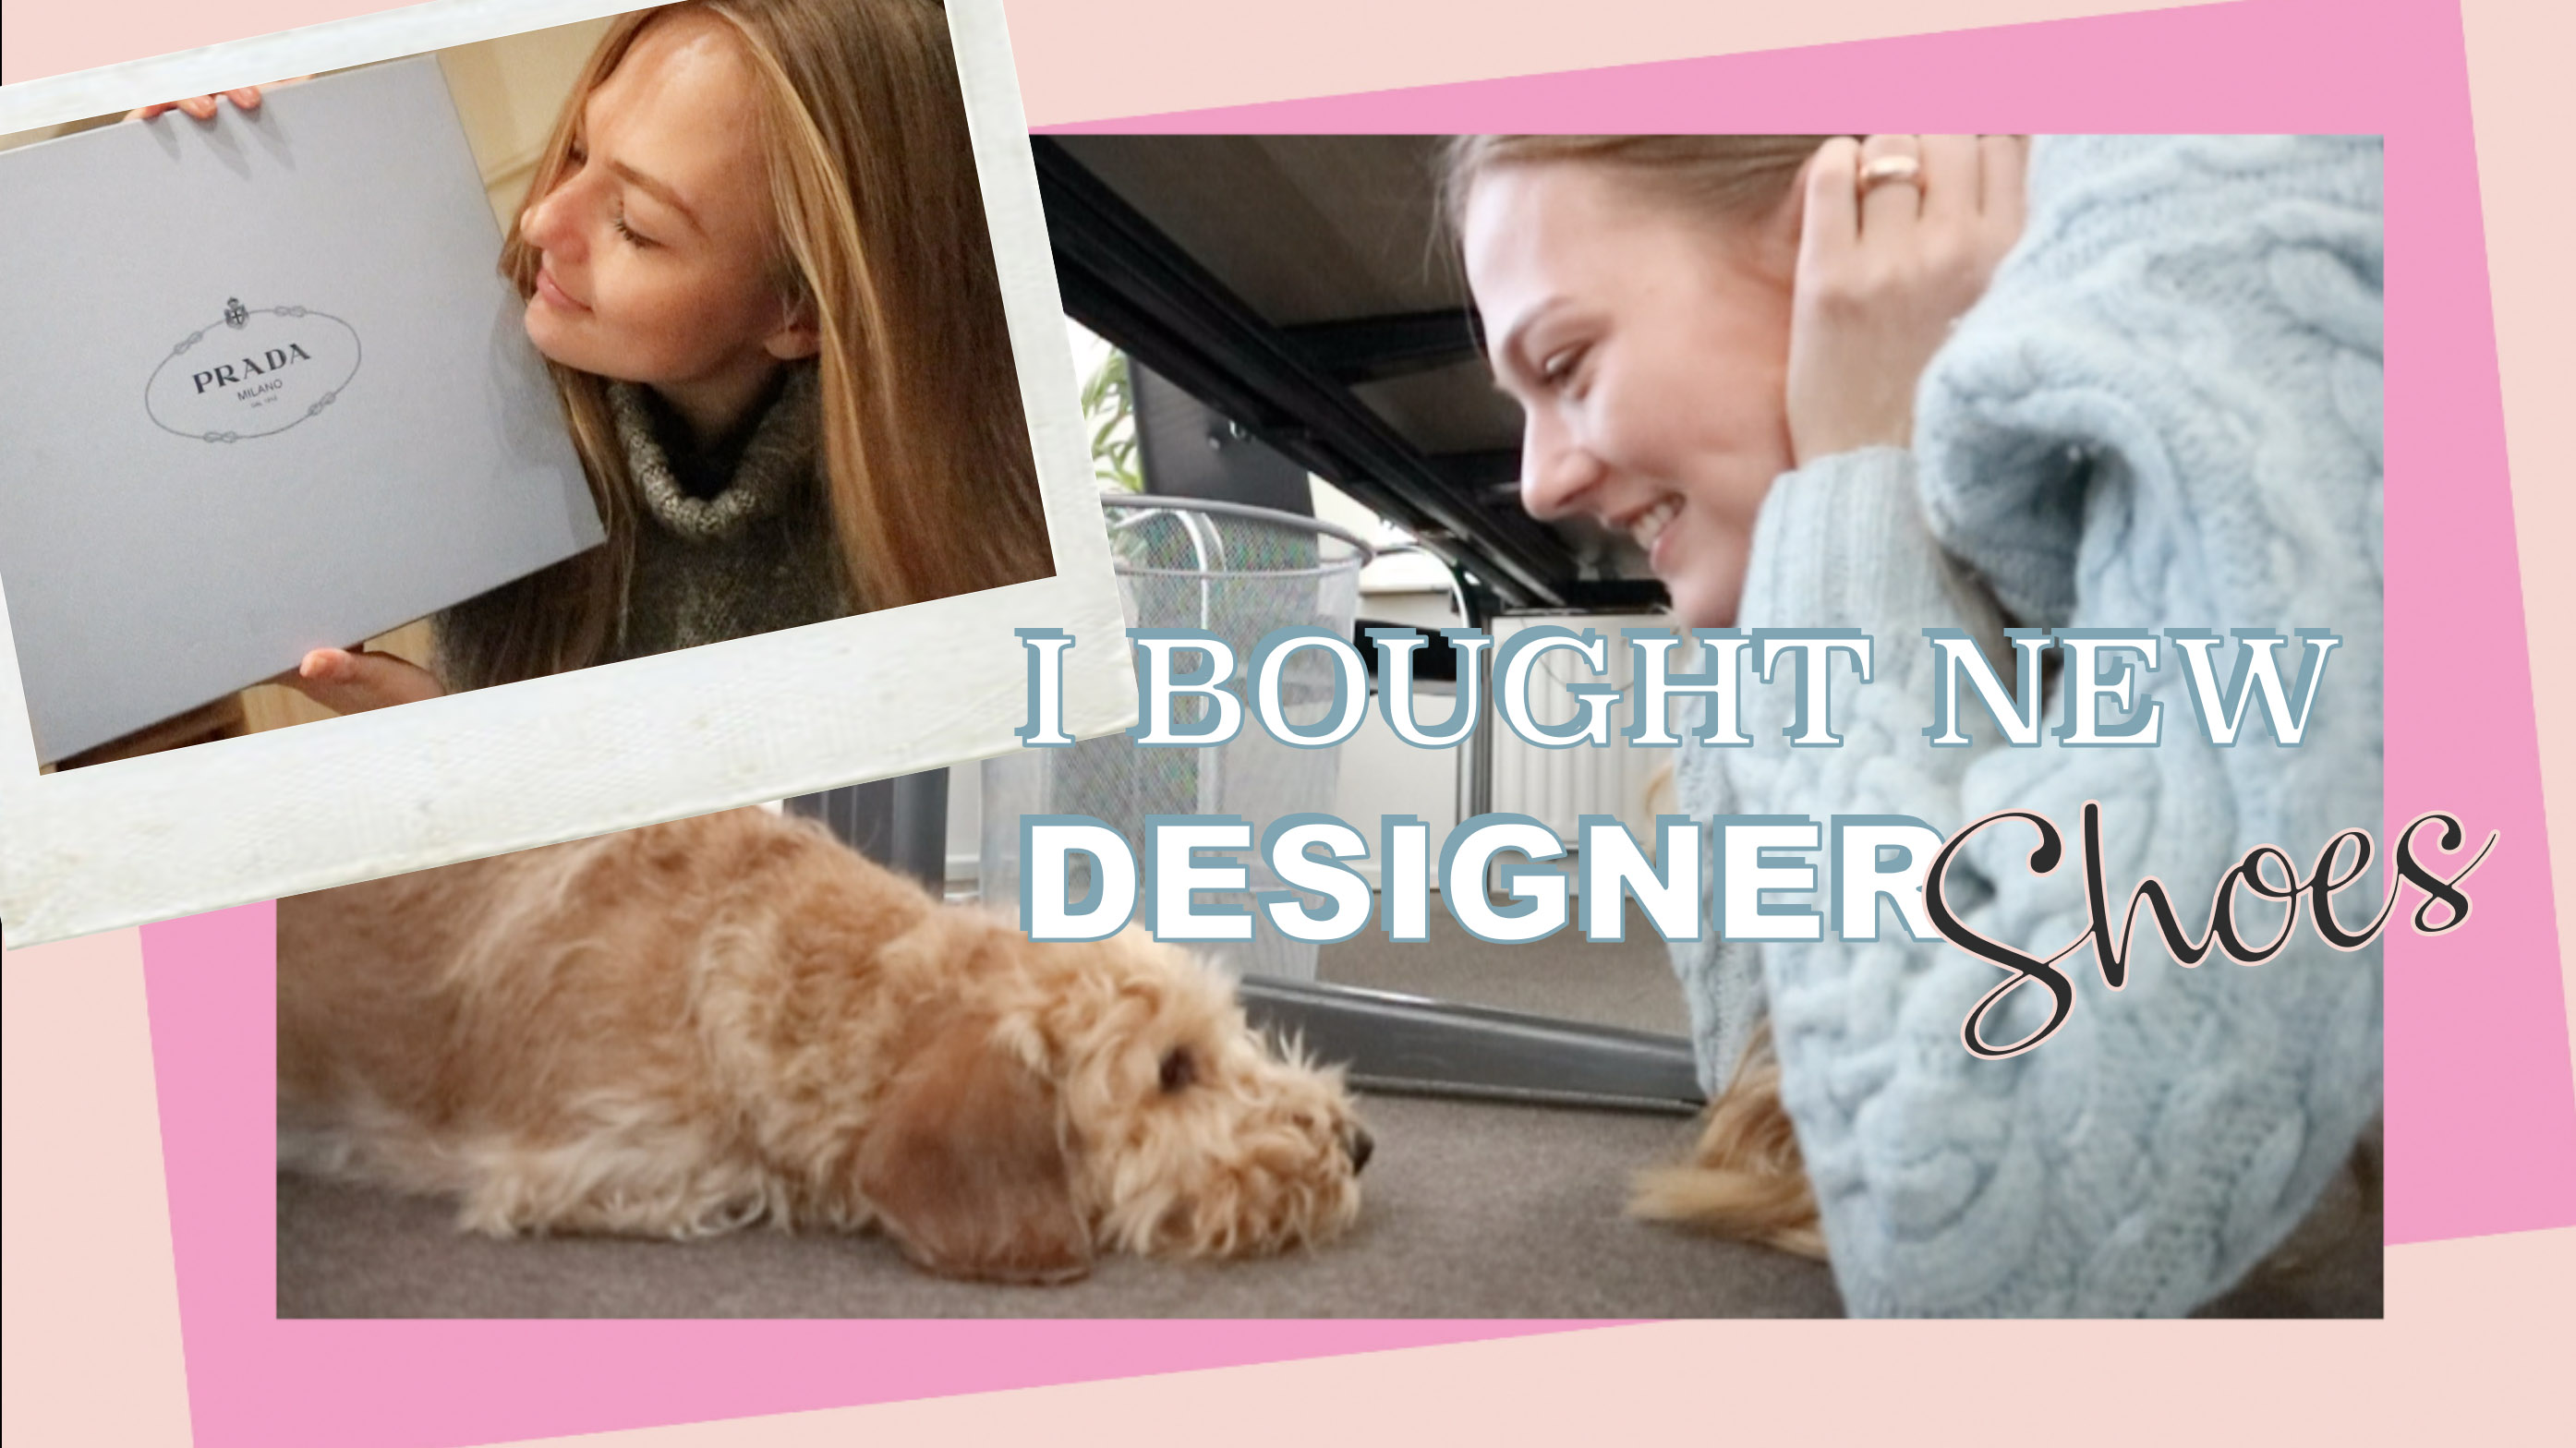 I BOUGHT NEW DESIGNER SHOES – WEEKVLOG 66